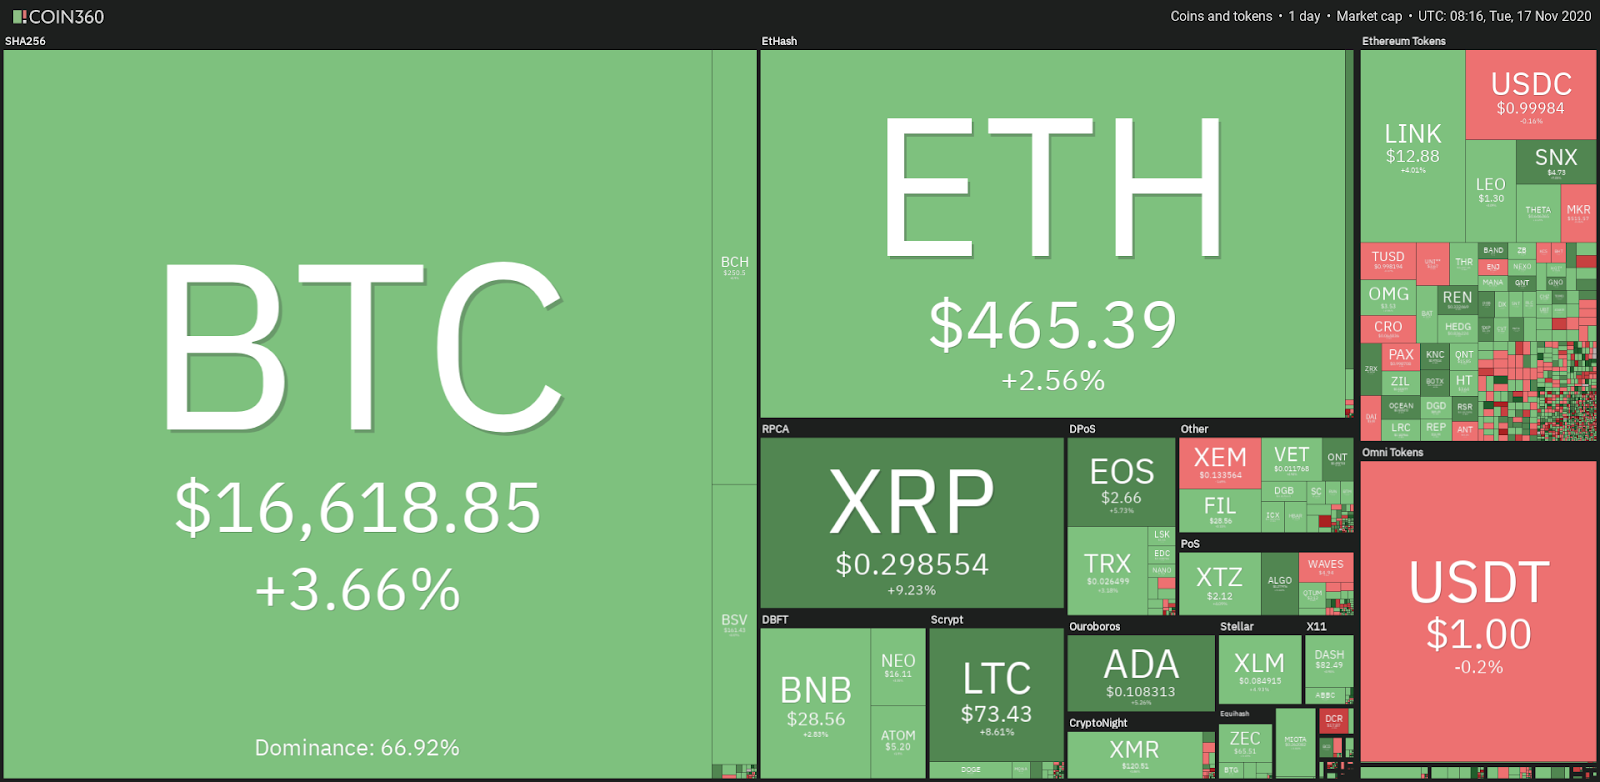 Top cryptocurrency price chart - 11/17